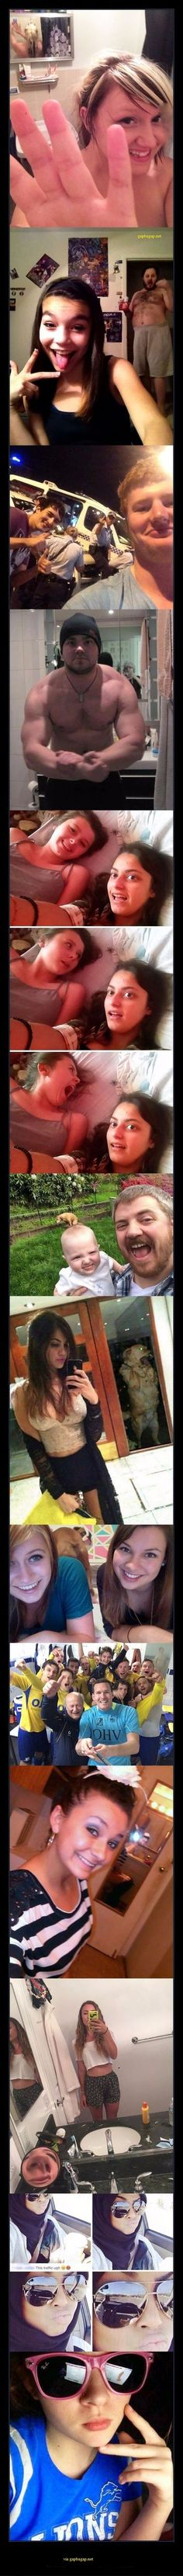 Funny Selfies Gone Wrong LOL